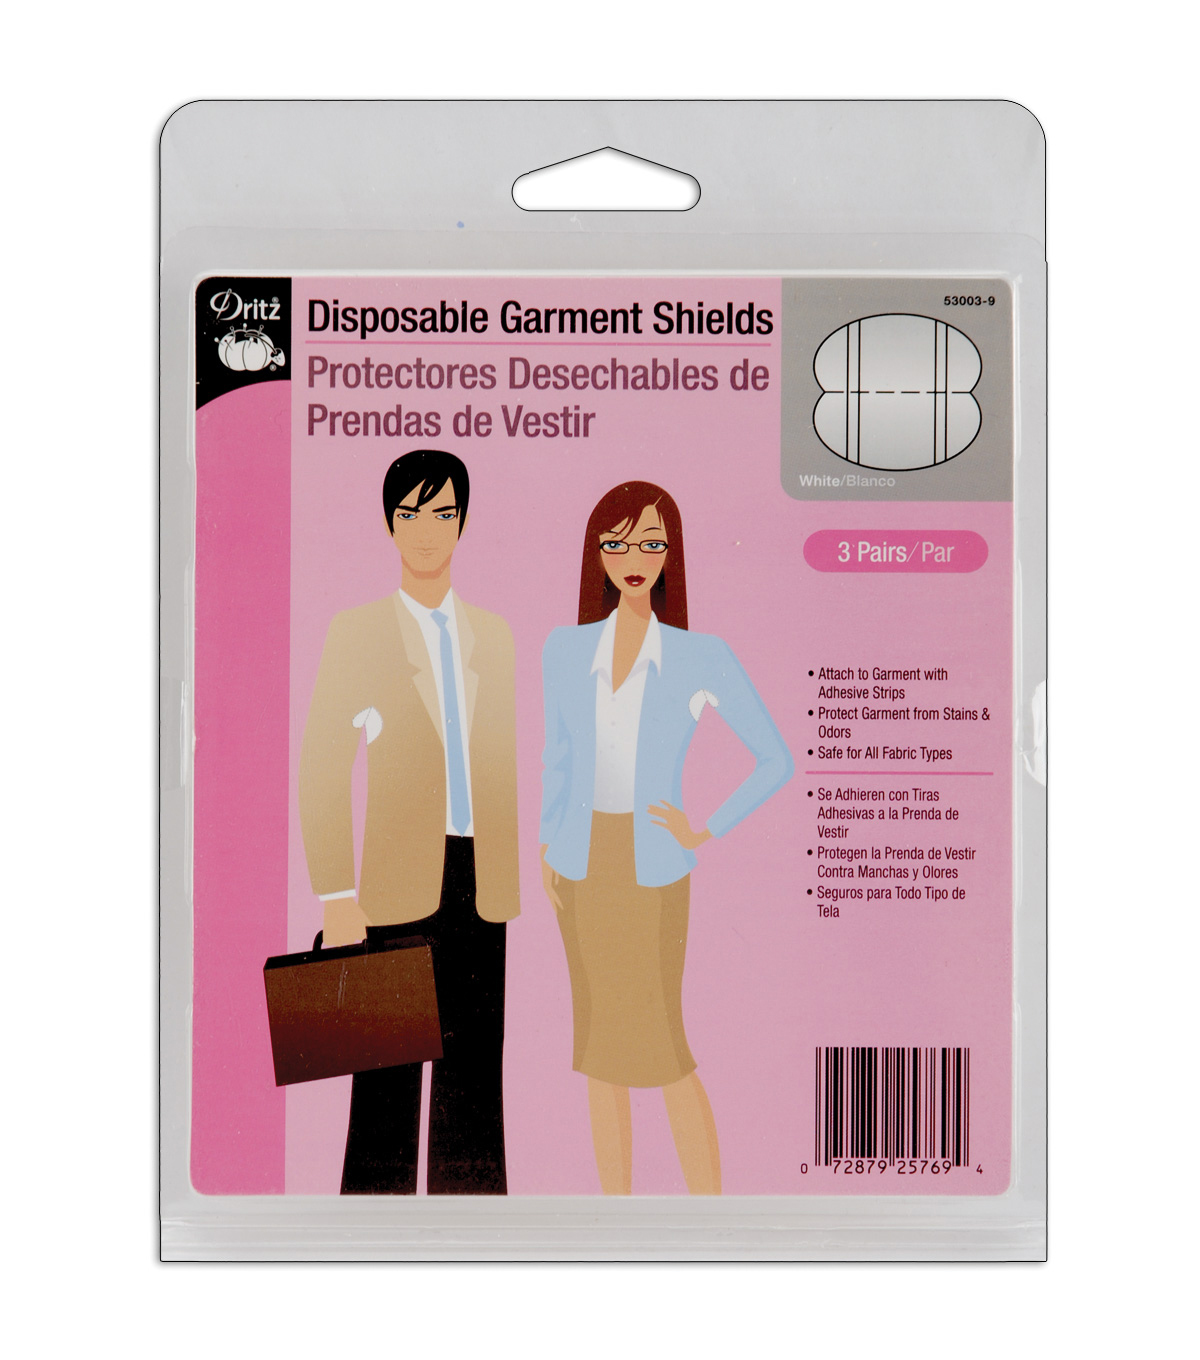 Dritz Disposable Garment Shields White 3pair